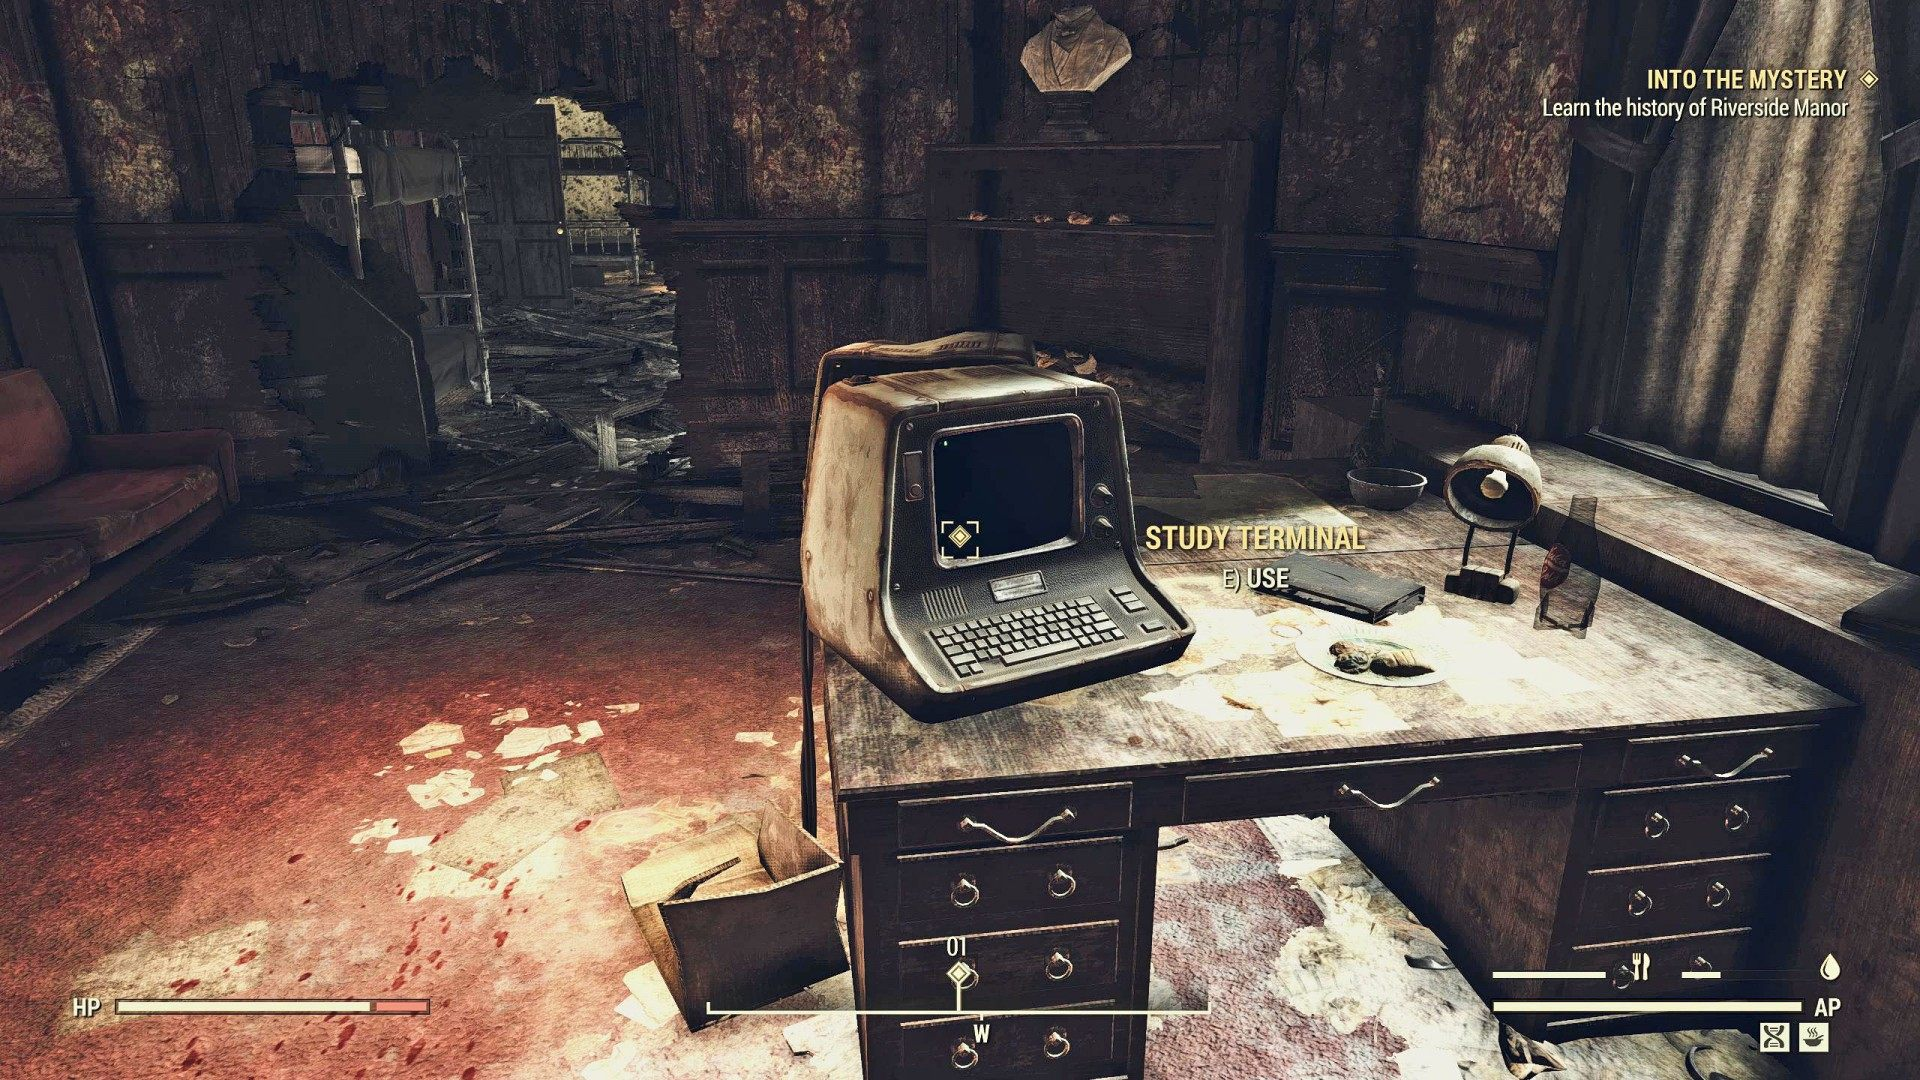 Into the Mystery, Fallout 76 Quest